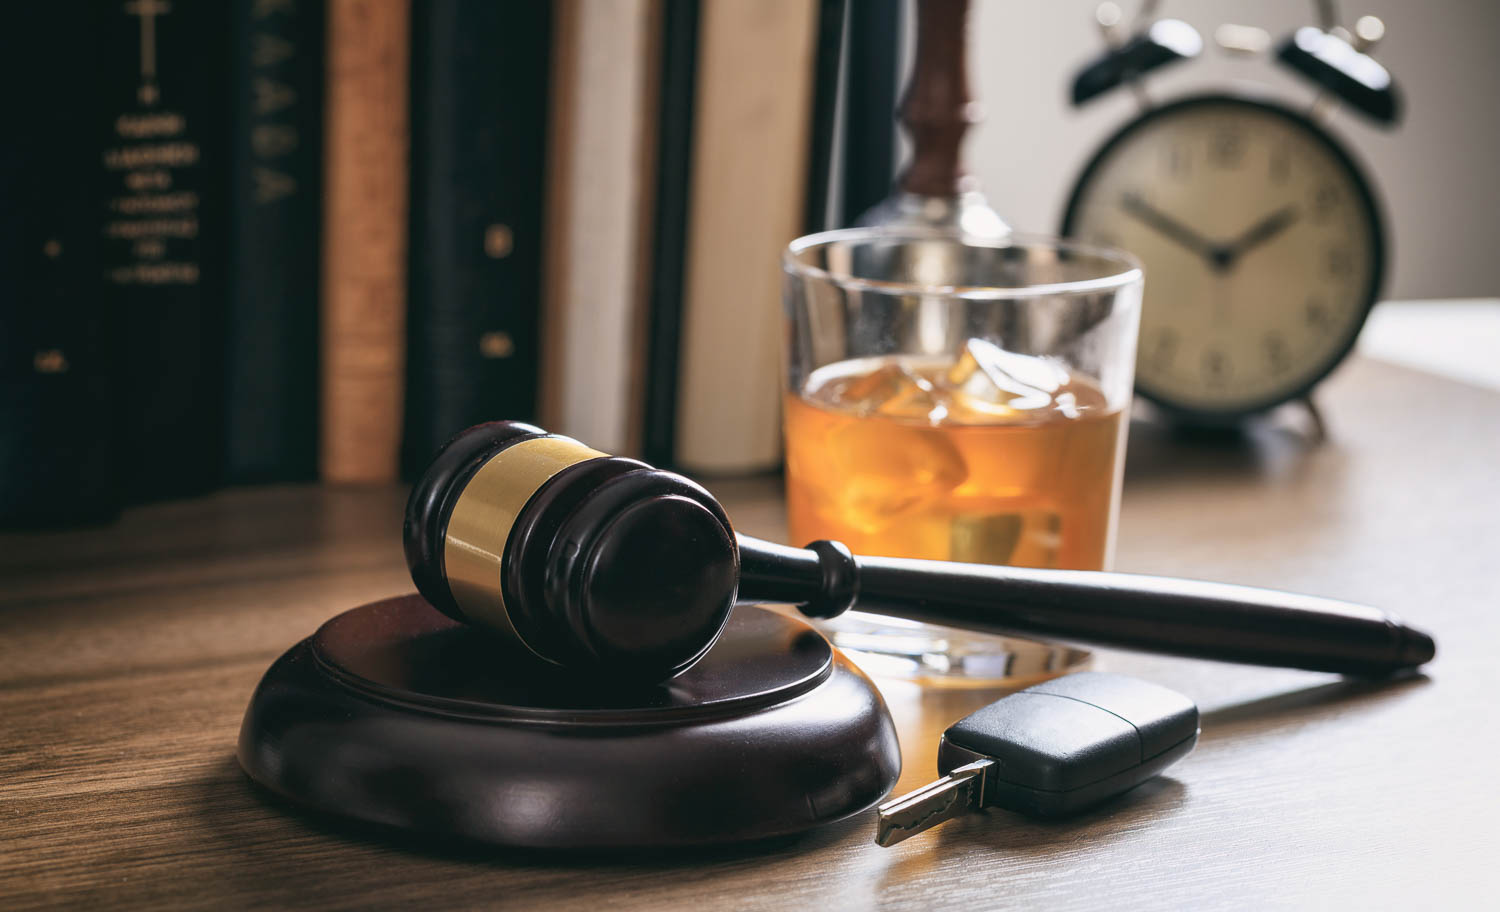 A gavel sits on a desk in a Fort Lauderdale Court with a set of car keys and a glass of alcohol on the desk. The image is meant to depict a DUI charge in South Florida.